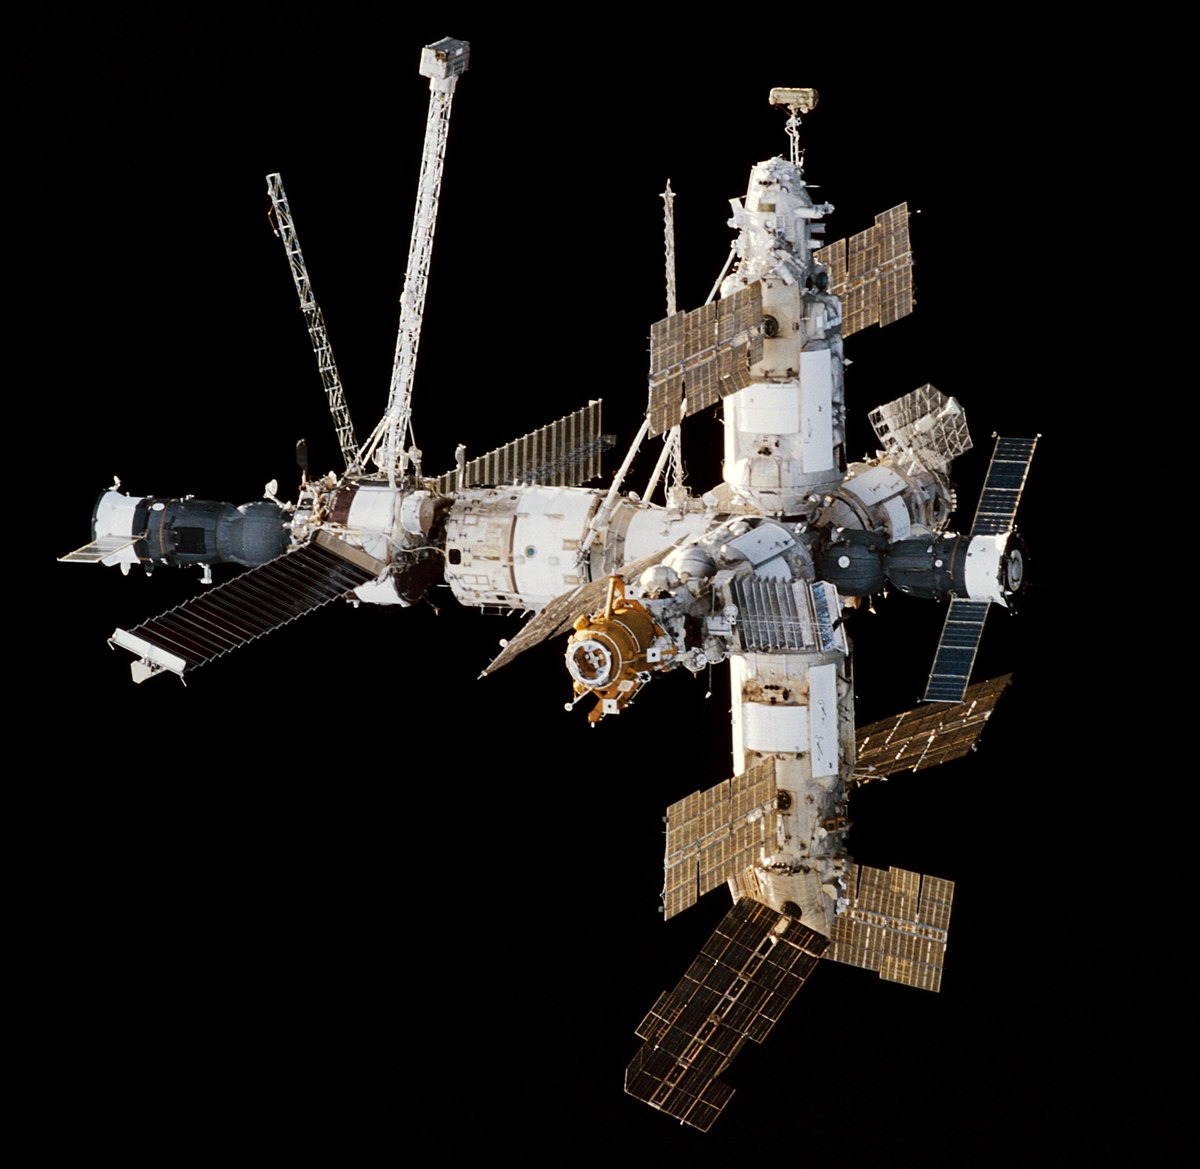 1200px-Mir_Space_Station_viewed_from_Endeavour_during_STS-89.jpg